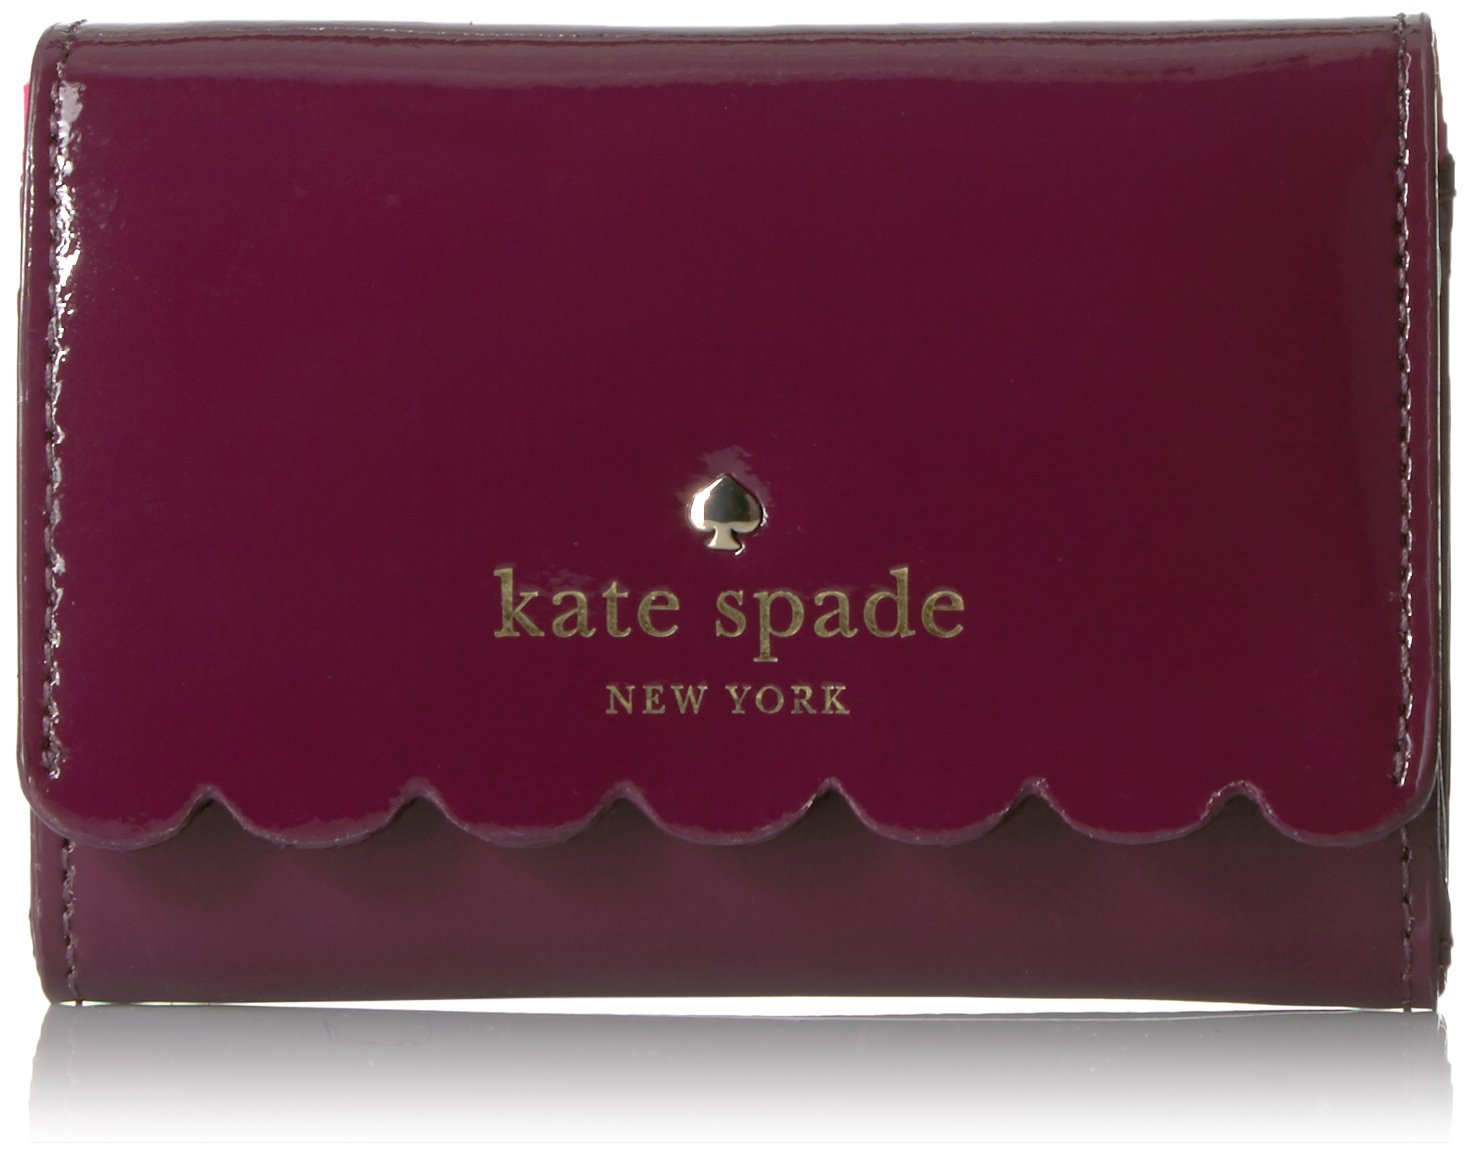 kate spade new york Lily Avenue Patent Darla Credit Card Holder, Mahogany/Radish, One Size by Kate Spade New York